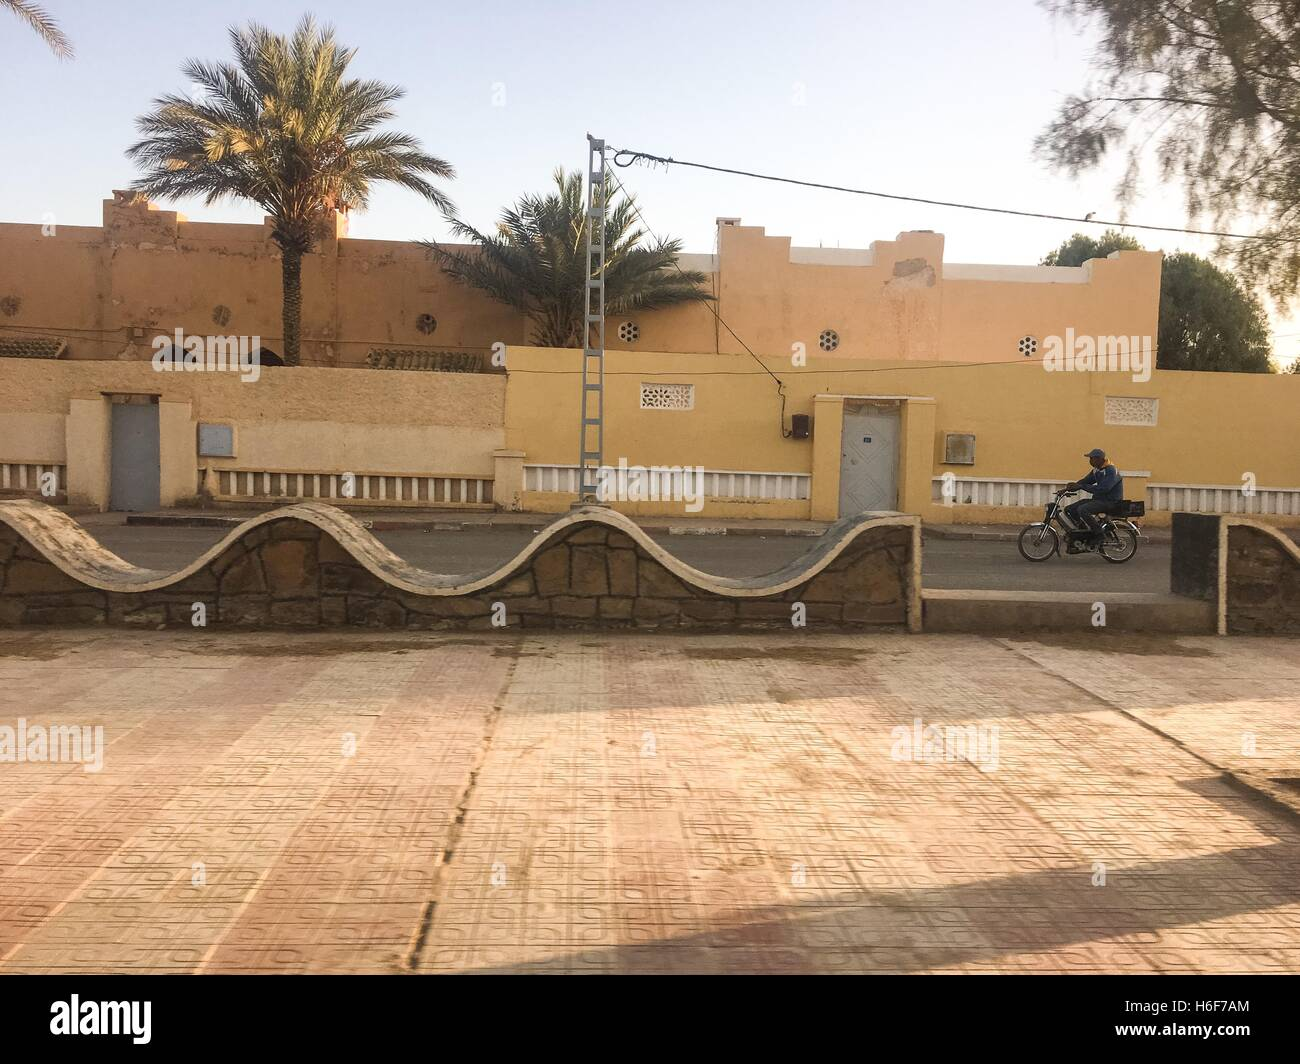 A Street view of touristic city Bechar Algeria. In the past, Bechar was the center of trading of gold and slaves - Stock Image